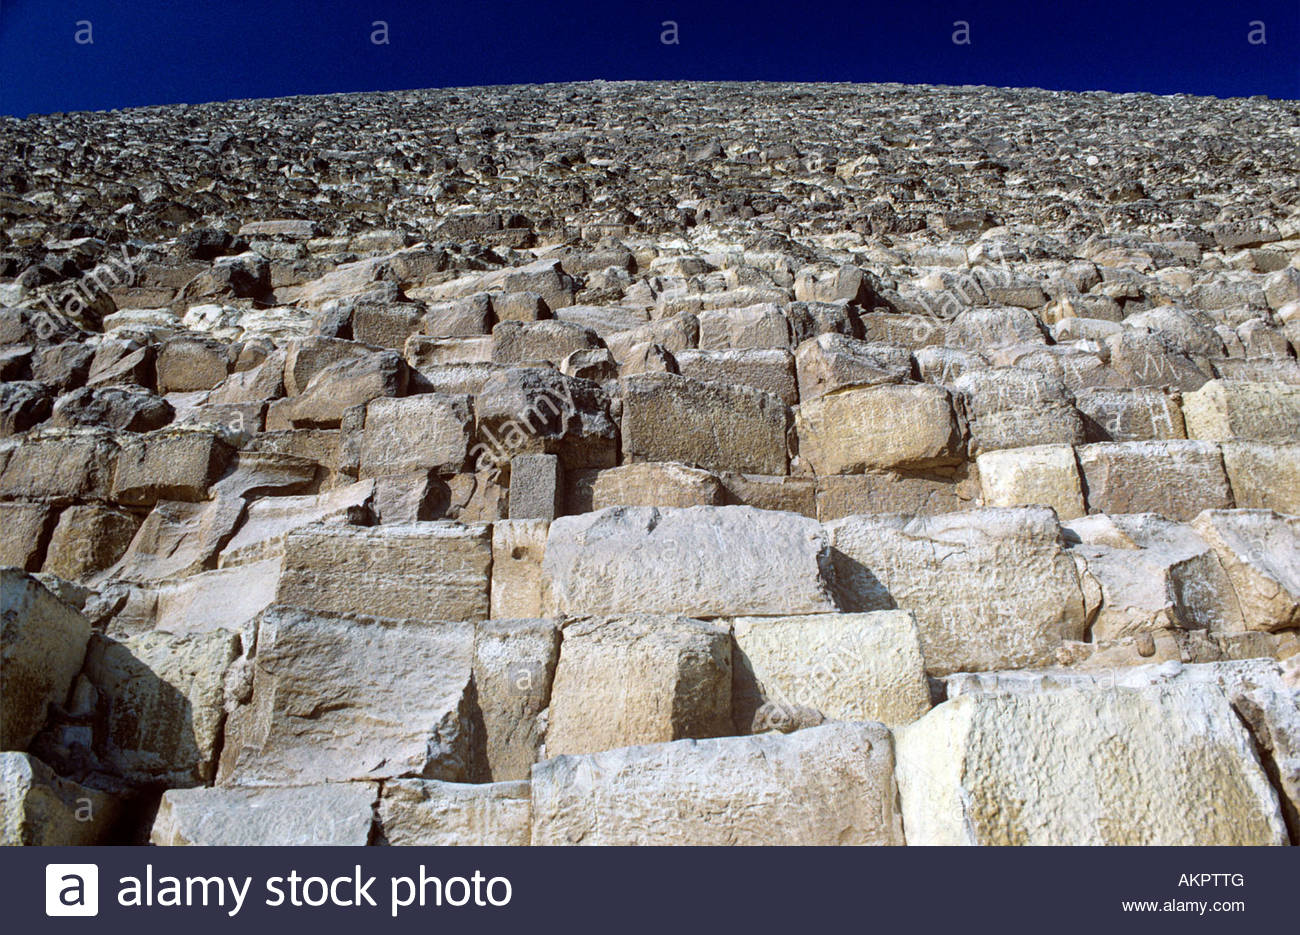 Low angle view of kheops pyramid - Stock Image